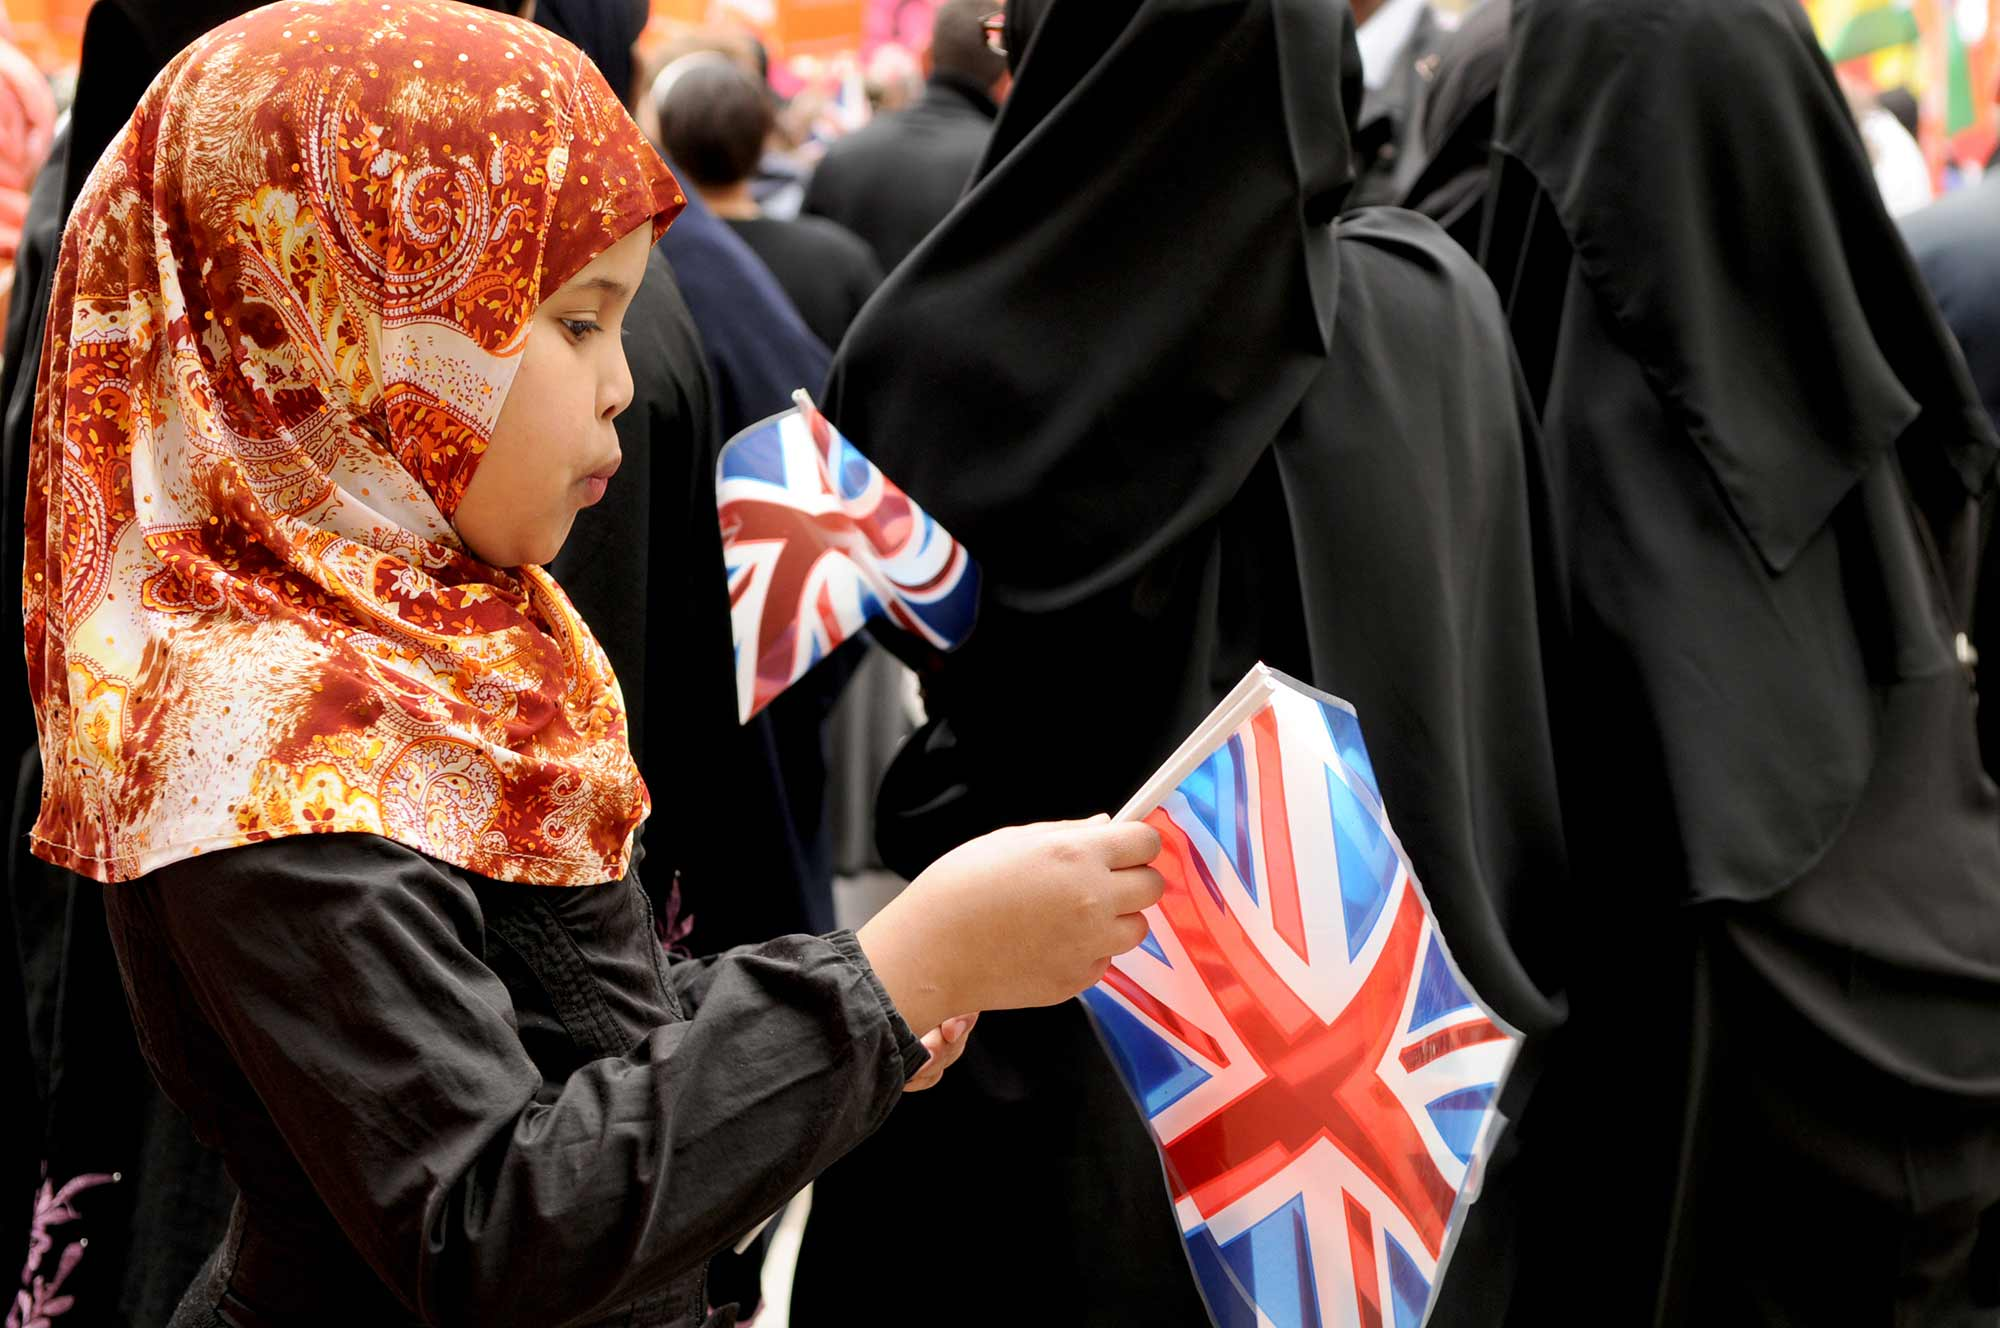 islamophobia and misconceptions about muslims in the united states Islamophobia in the united states can be described as the unvalidated, highly speculative, affective distrust and hostility towards muslims, islam, and those.